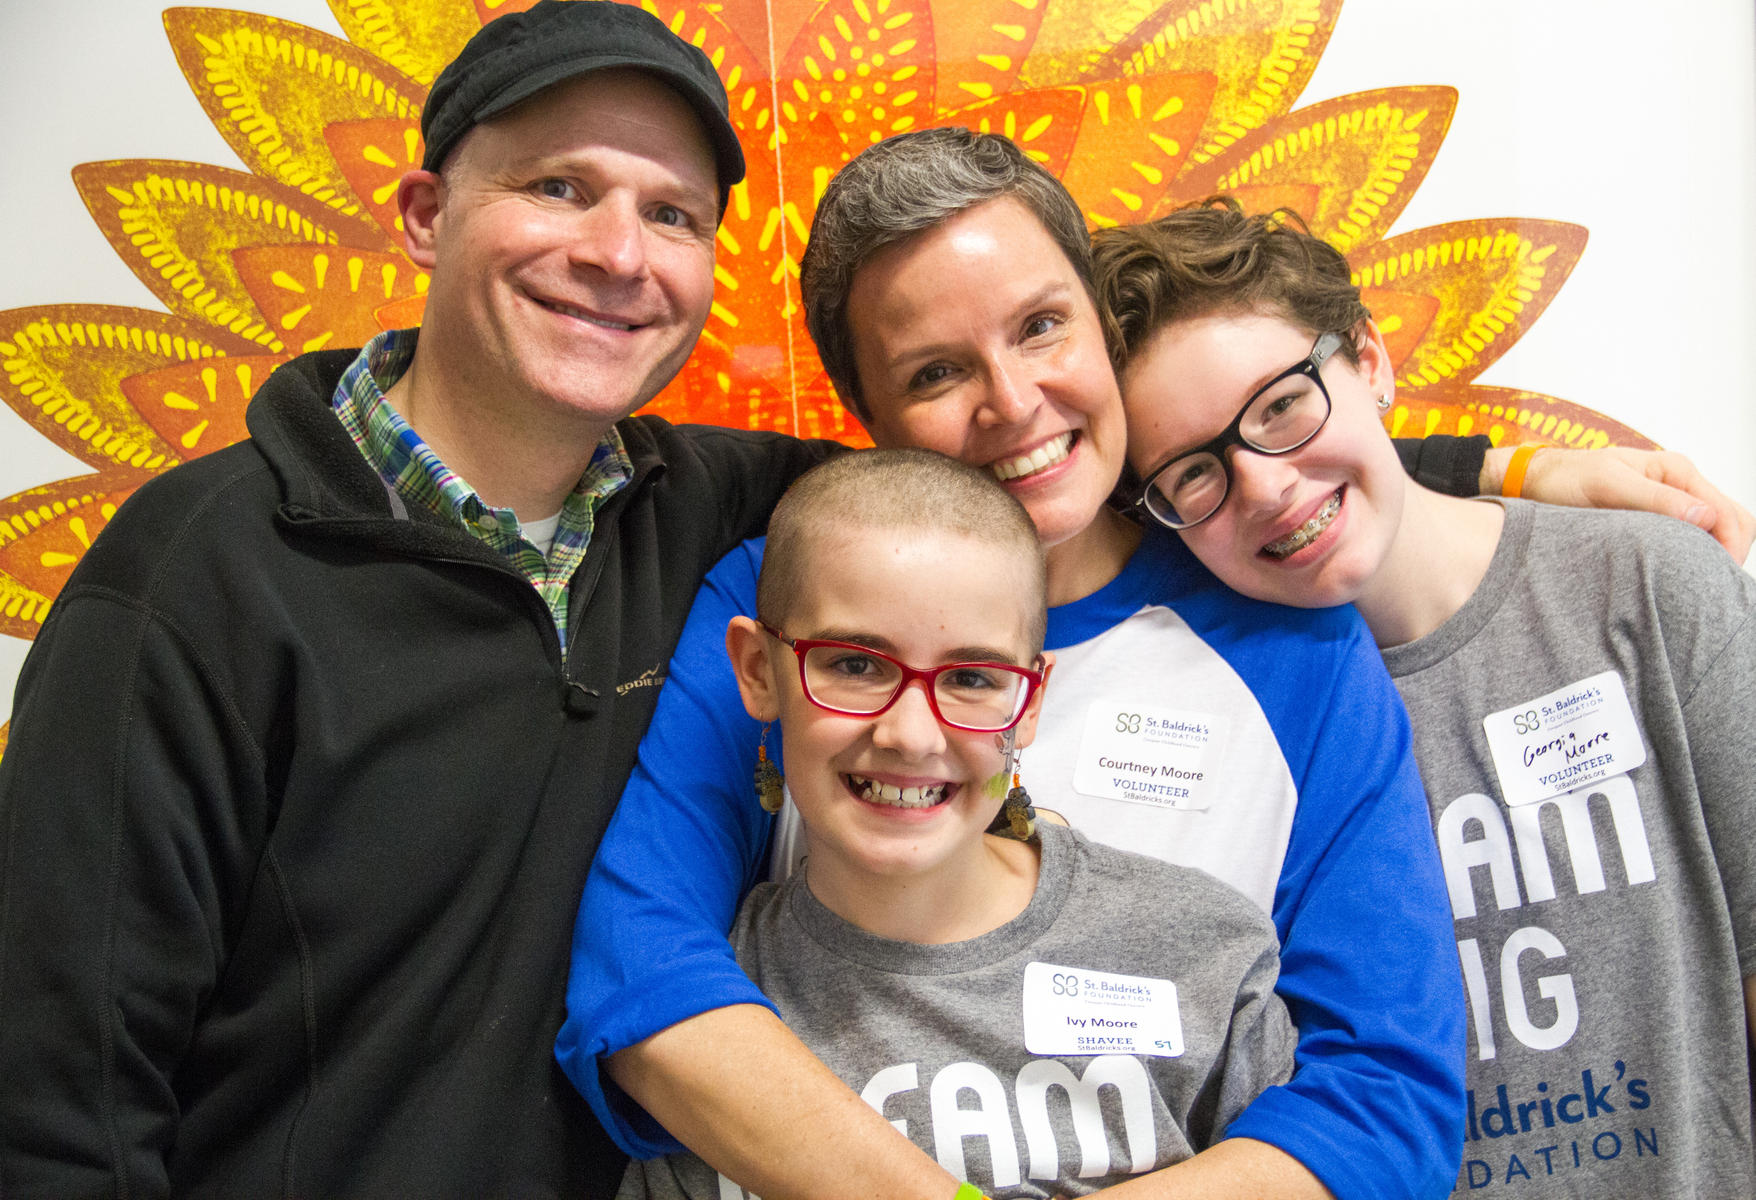 The Moore Family: Georgia and the Peachy Keens Hero Fund at St. Baldrick's Foundation